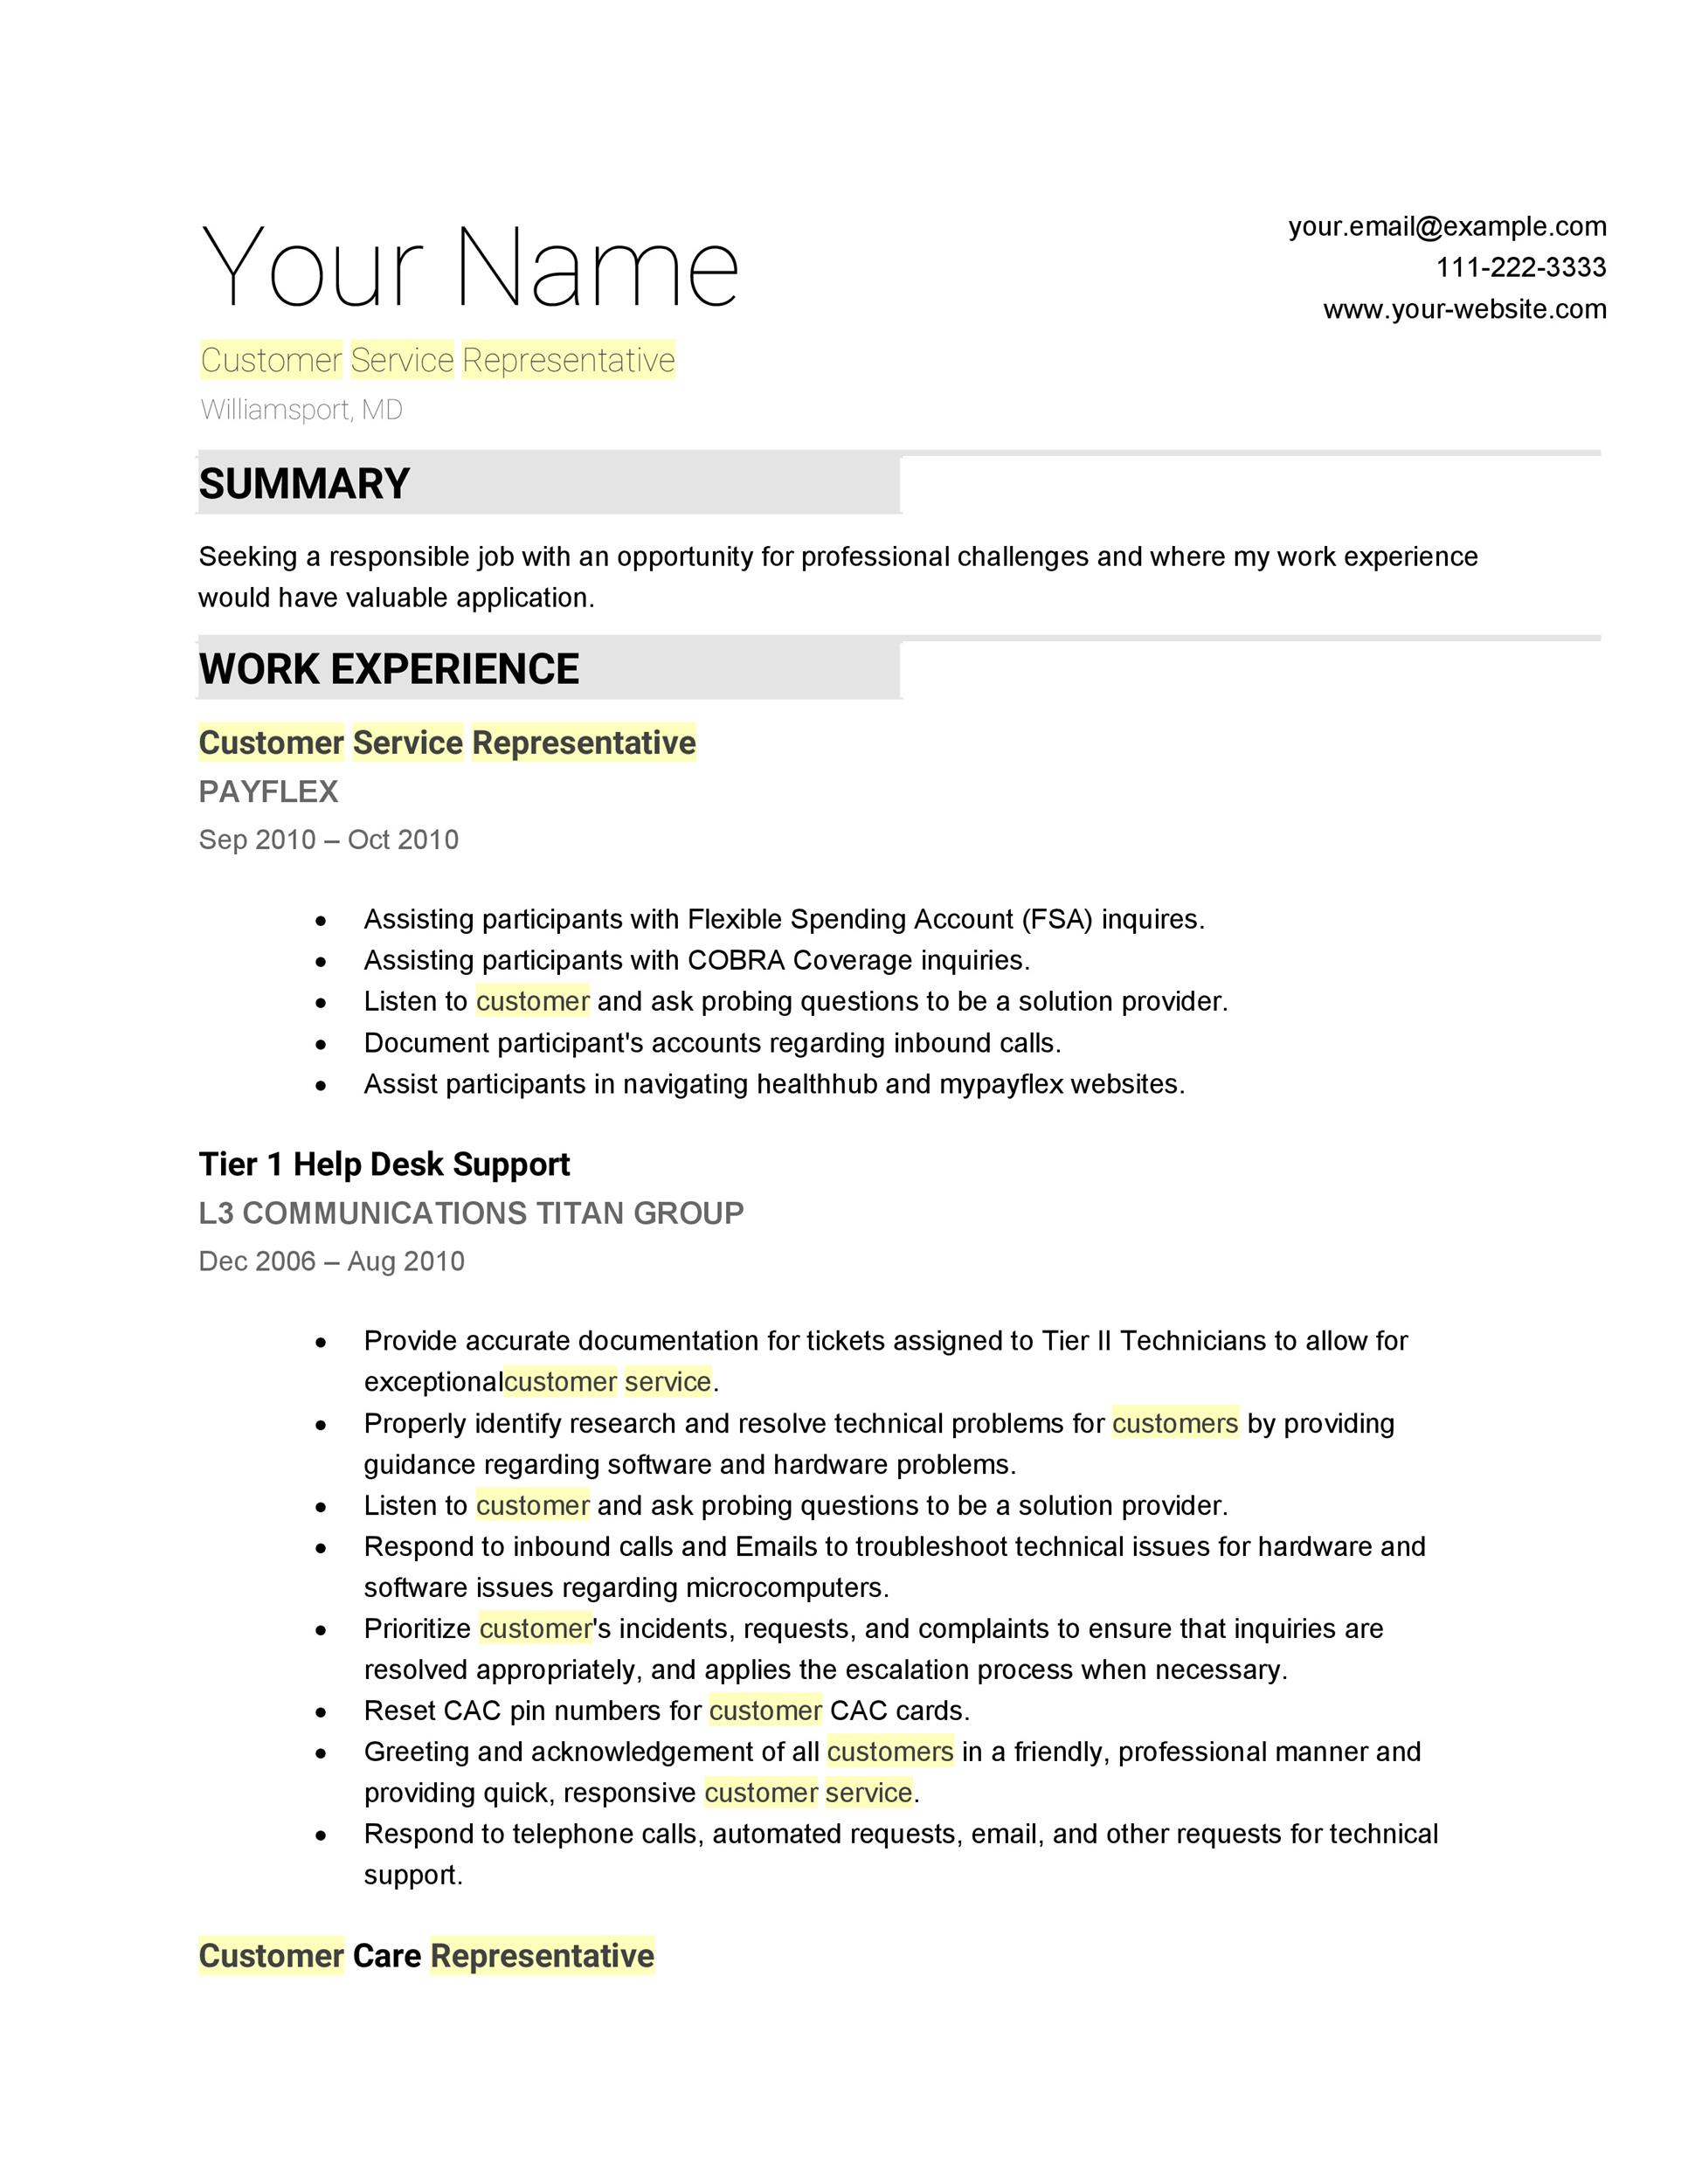 Customer Service Resume Templates  Customer Representative Resume